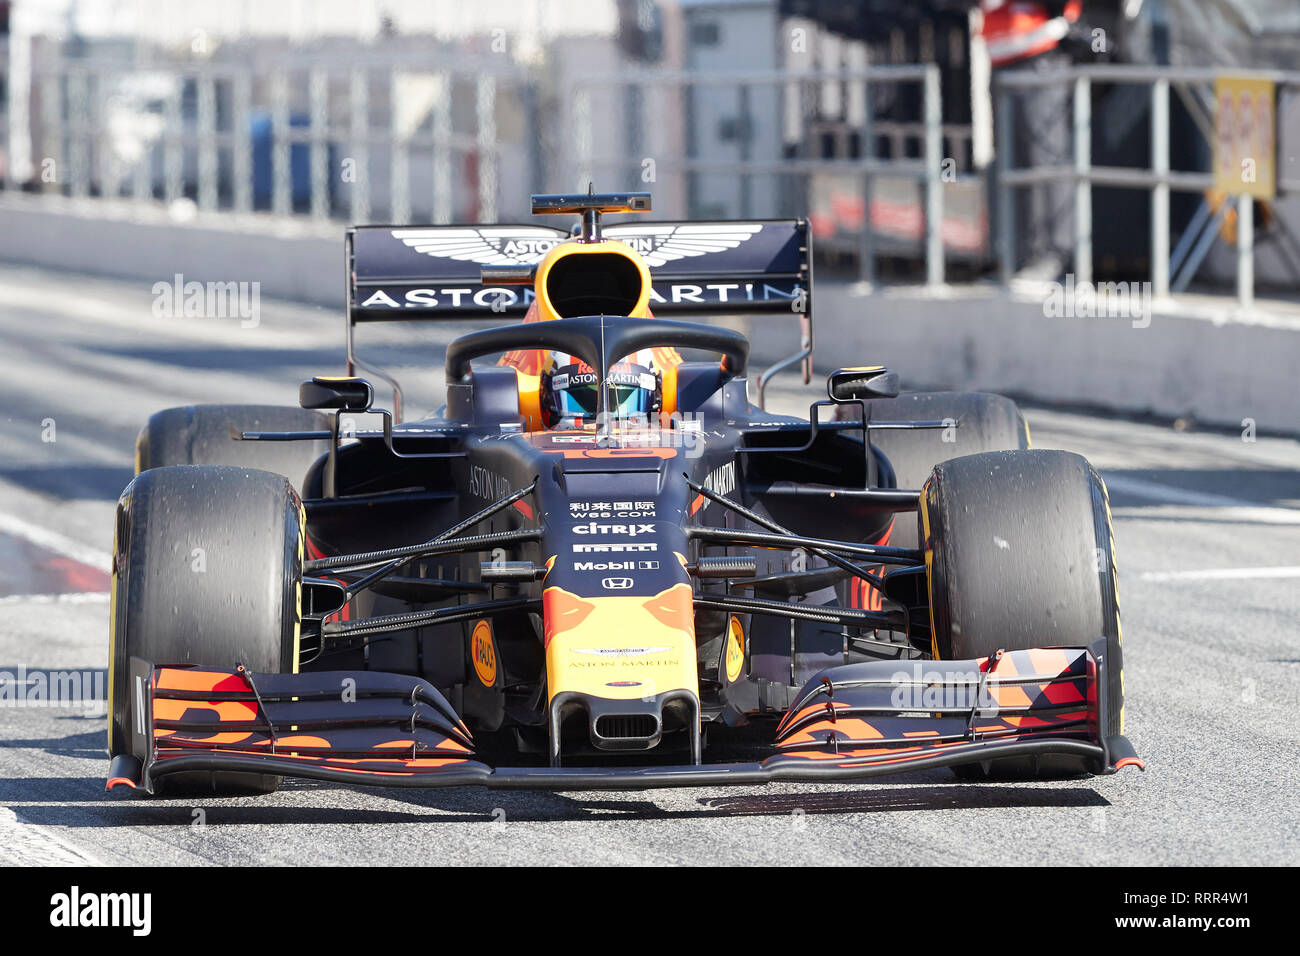 Pierre Gasly Aston Martin Red Bull Racing Rd15 Car Seen In Action During The Winter Testing Days At The Circuit De Catalunya In Montmelo Catalonia Stock Photo Alamy